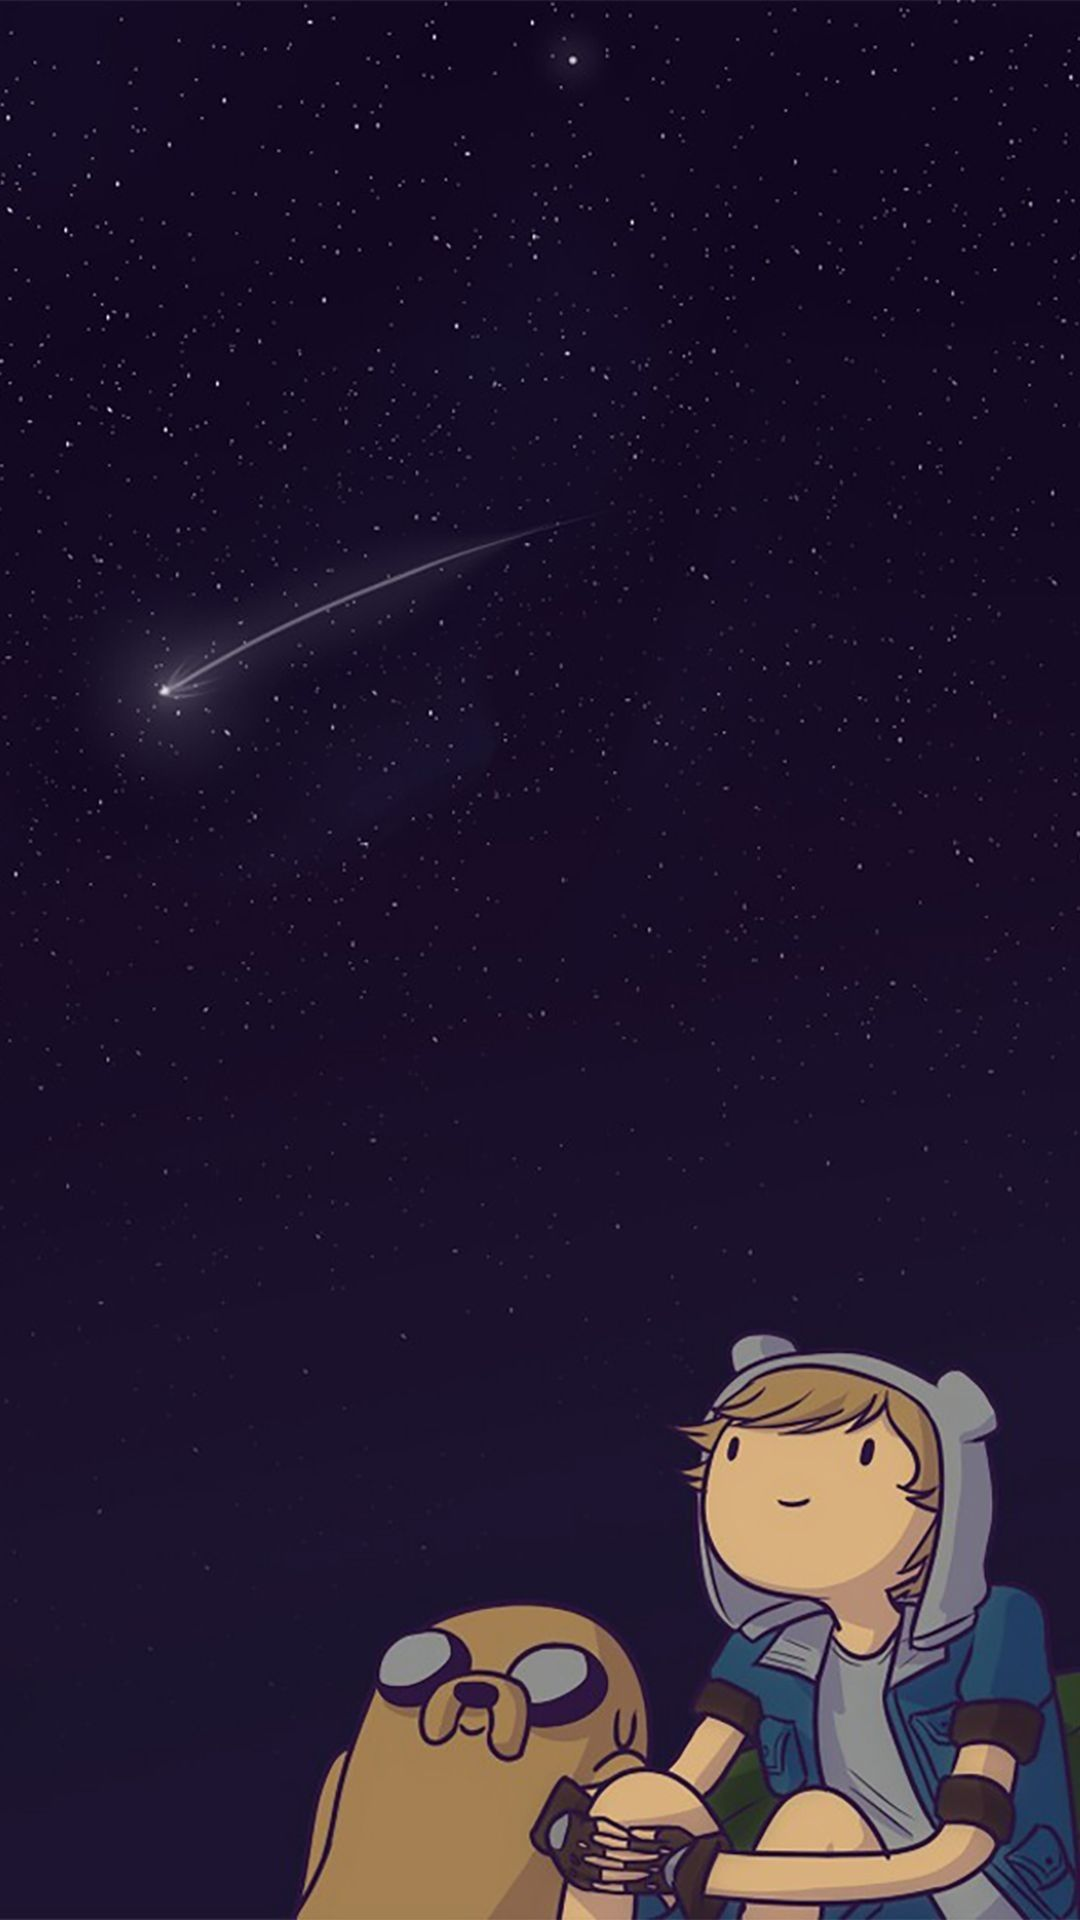 Pin By Jackarow On Wallpaper Adventure Time Iphone Wallpaper Adventure Time Wallpaper Cute Cartoon Wallpapers